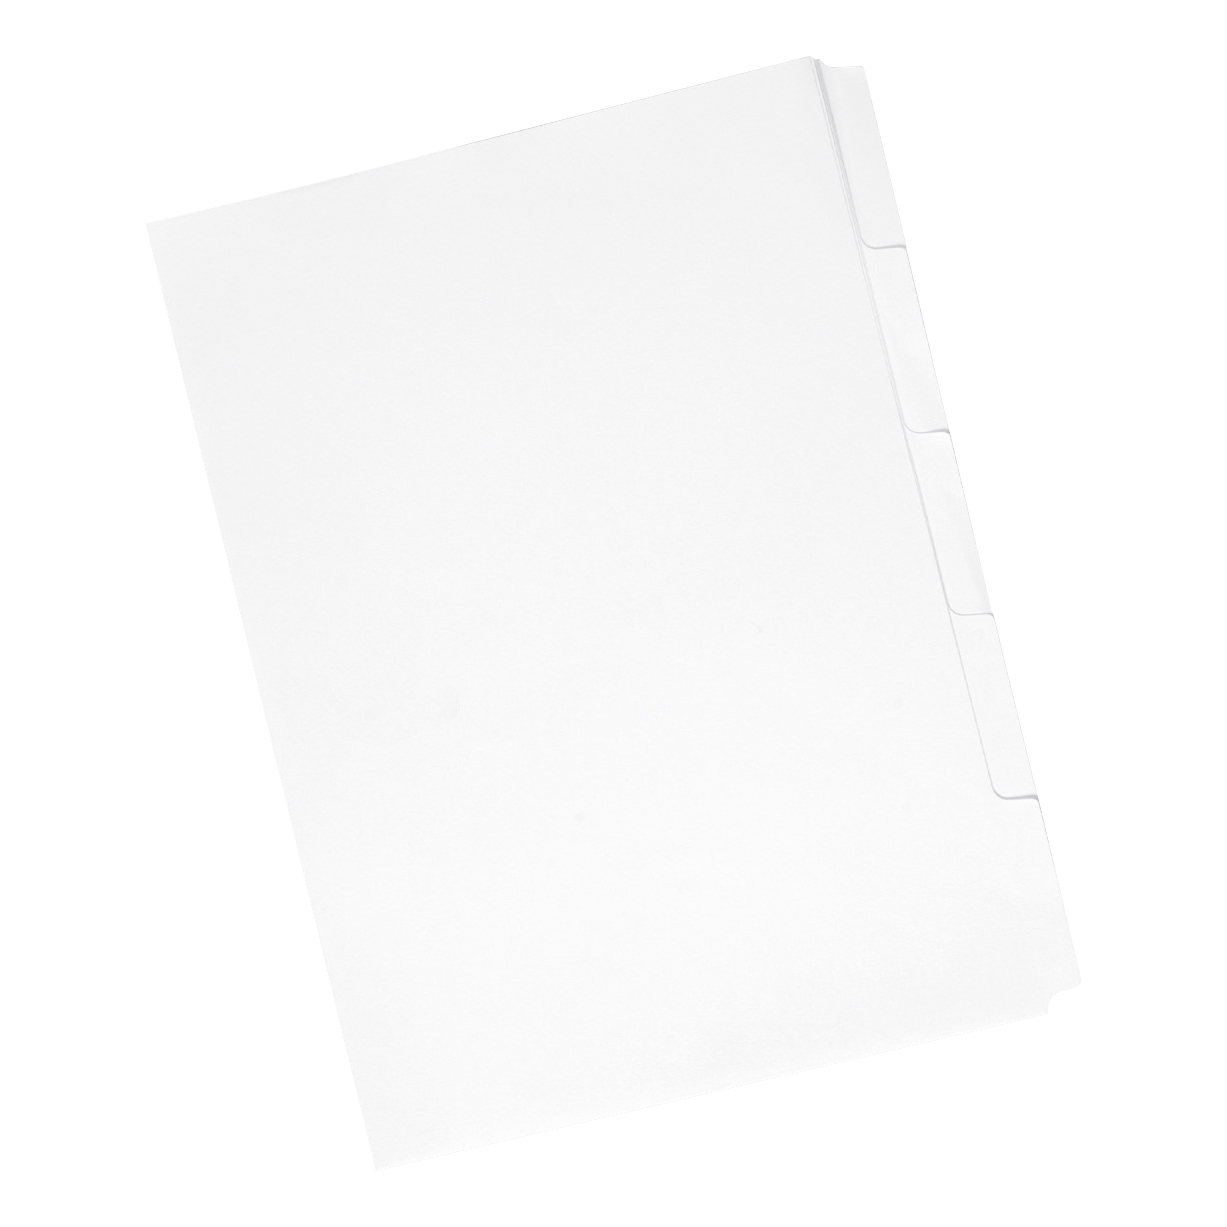 Concord Reverse Collated Subject Dividers 5-Part Unpunched 150gsm A4 White Ref 77301 [Pack 50]